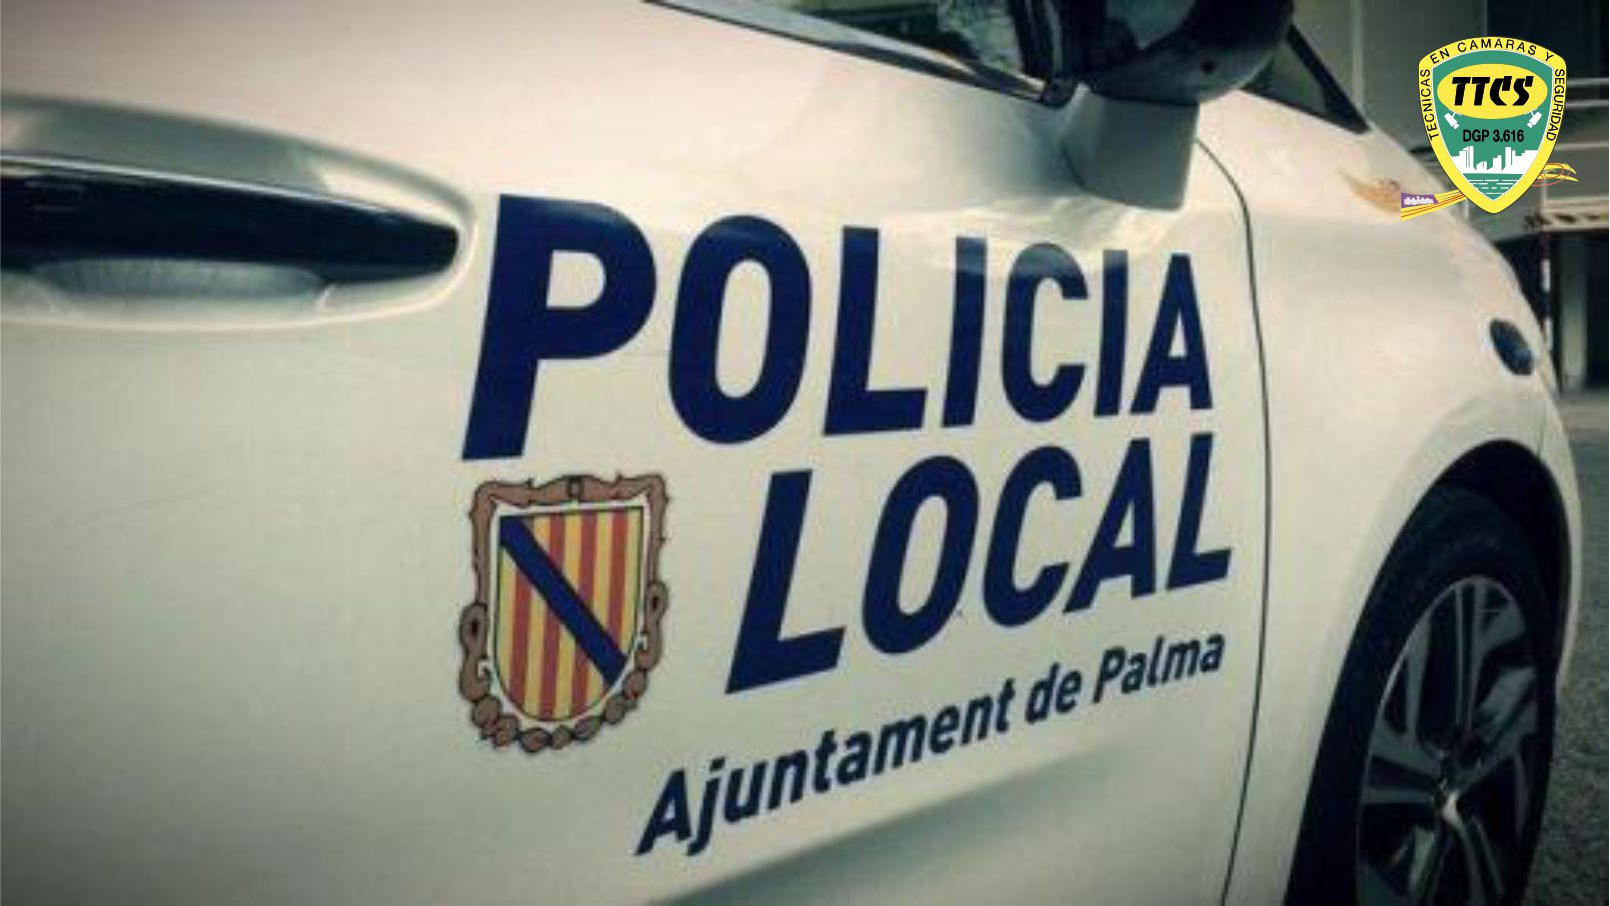 TTCS Plazas policia local